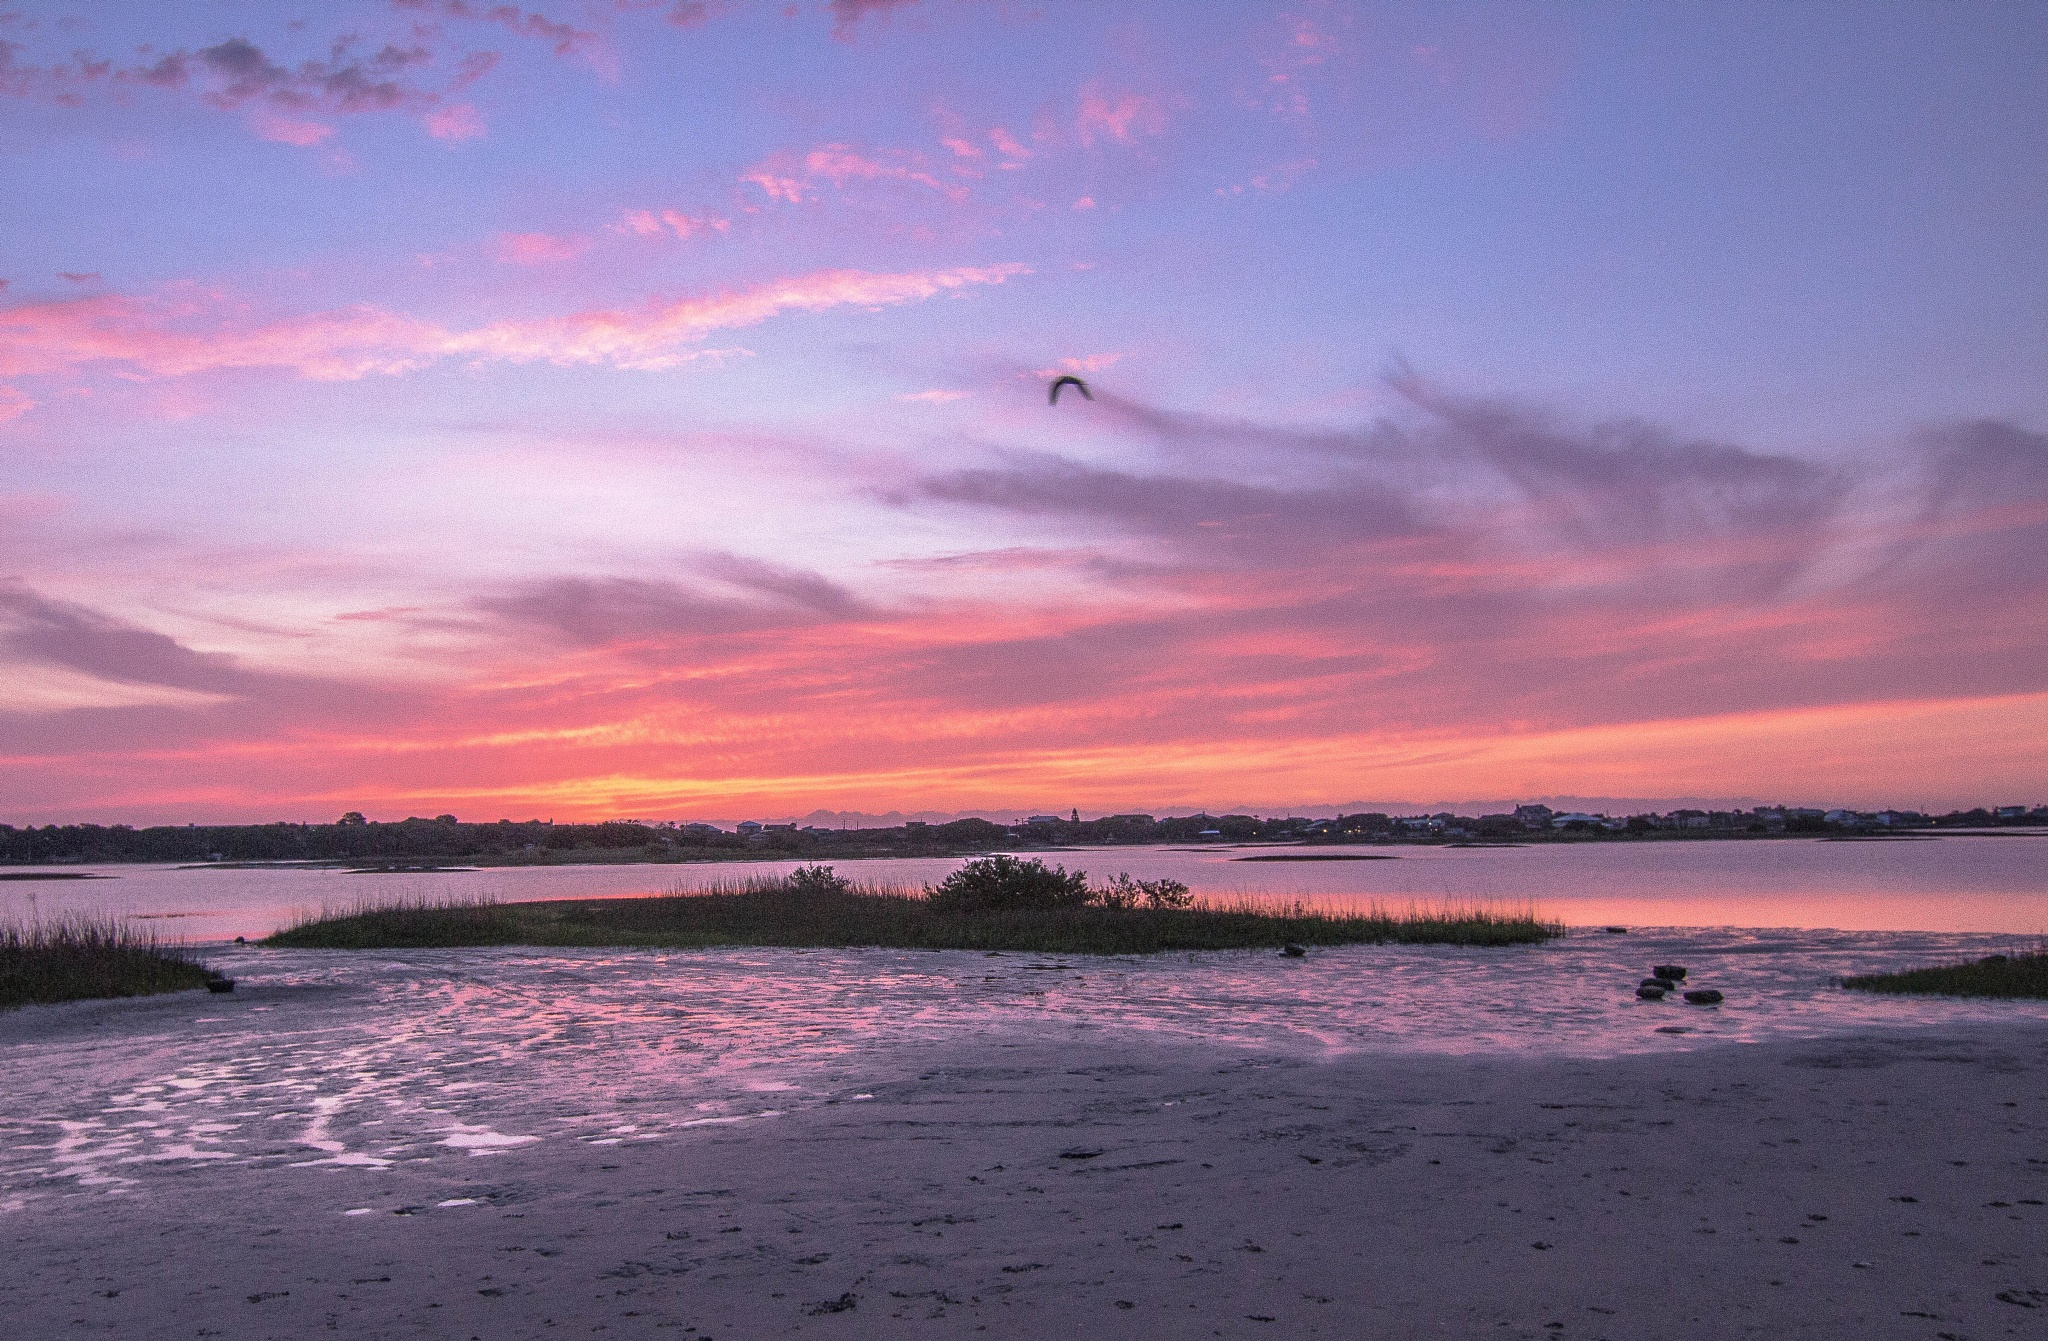 Sun Rising Over Inter Coastal in St. Augustine, Florida by Peter Cavaliere